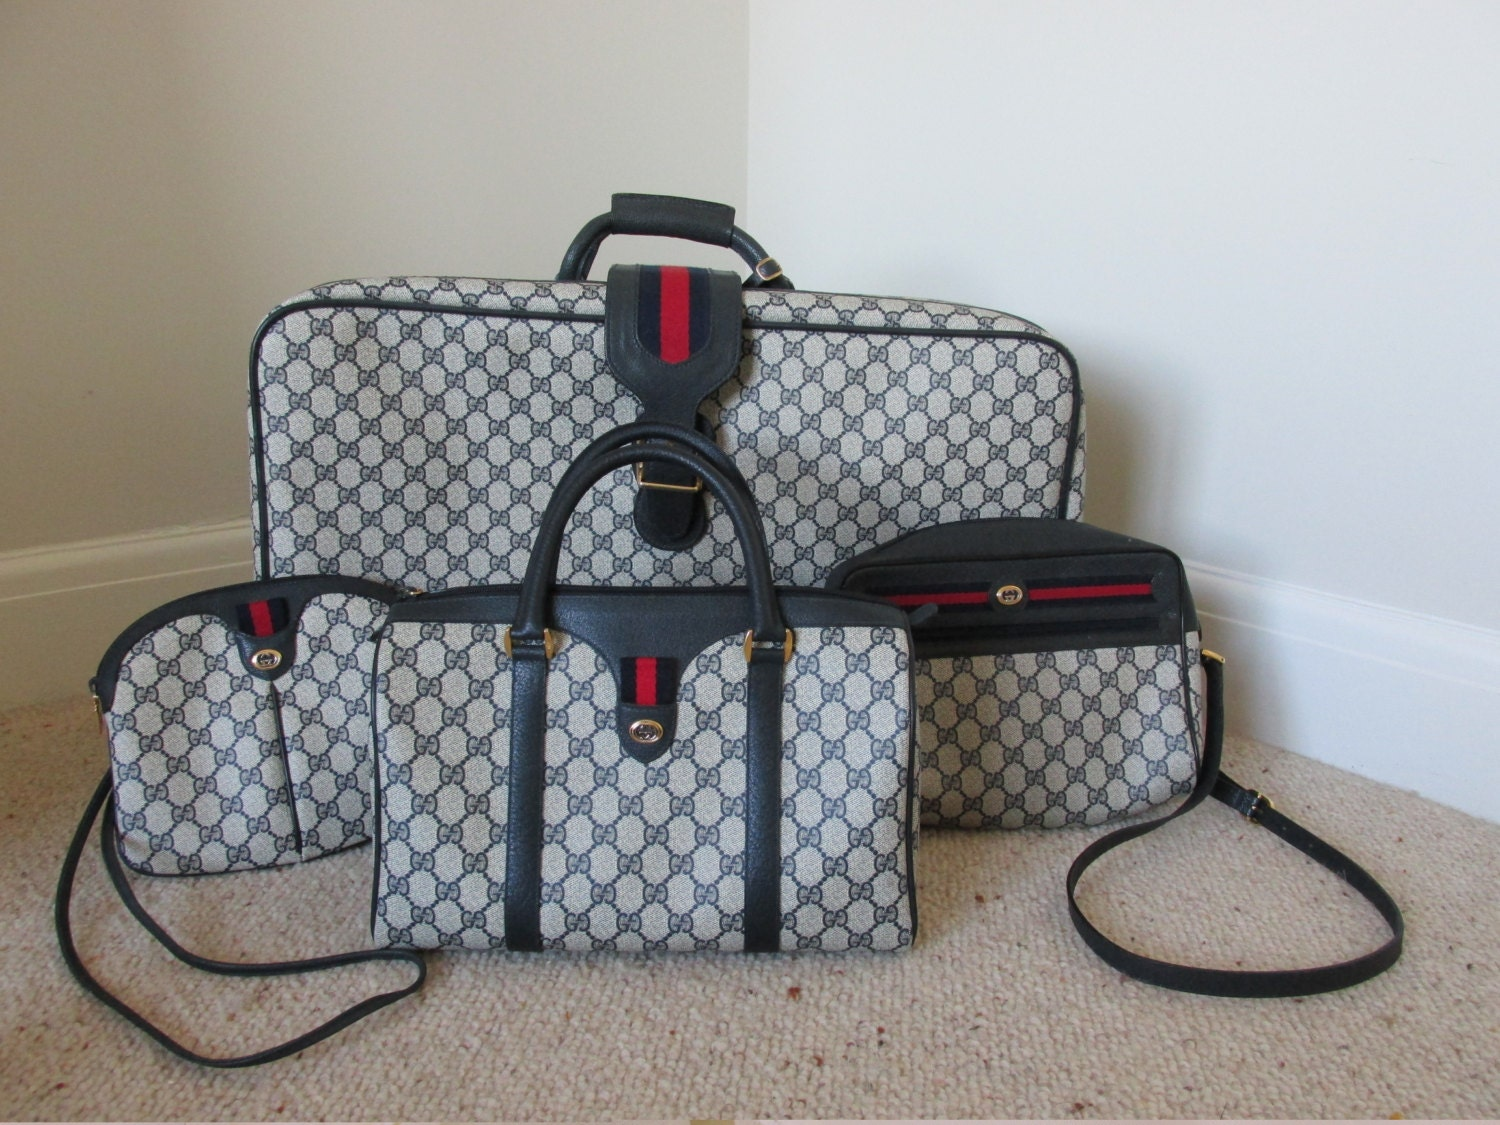 Gucci Suitcase S Vintage Luggage Overnight Case Holiday - Free download of invoice template gucci outlet store online